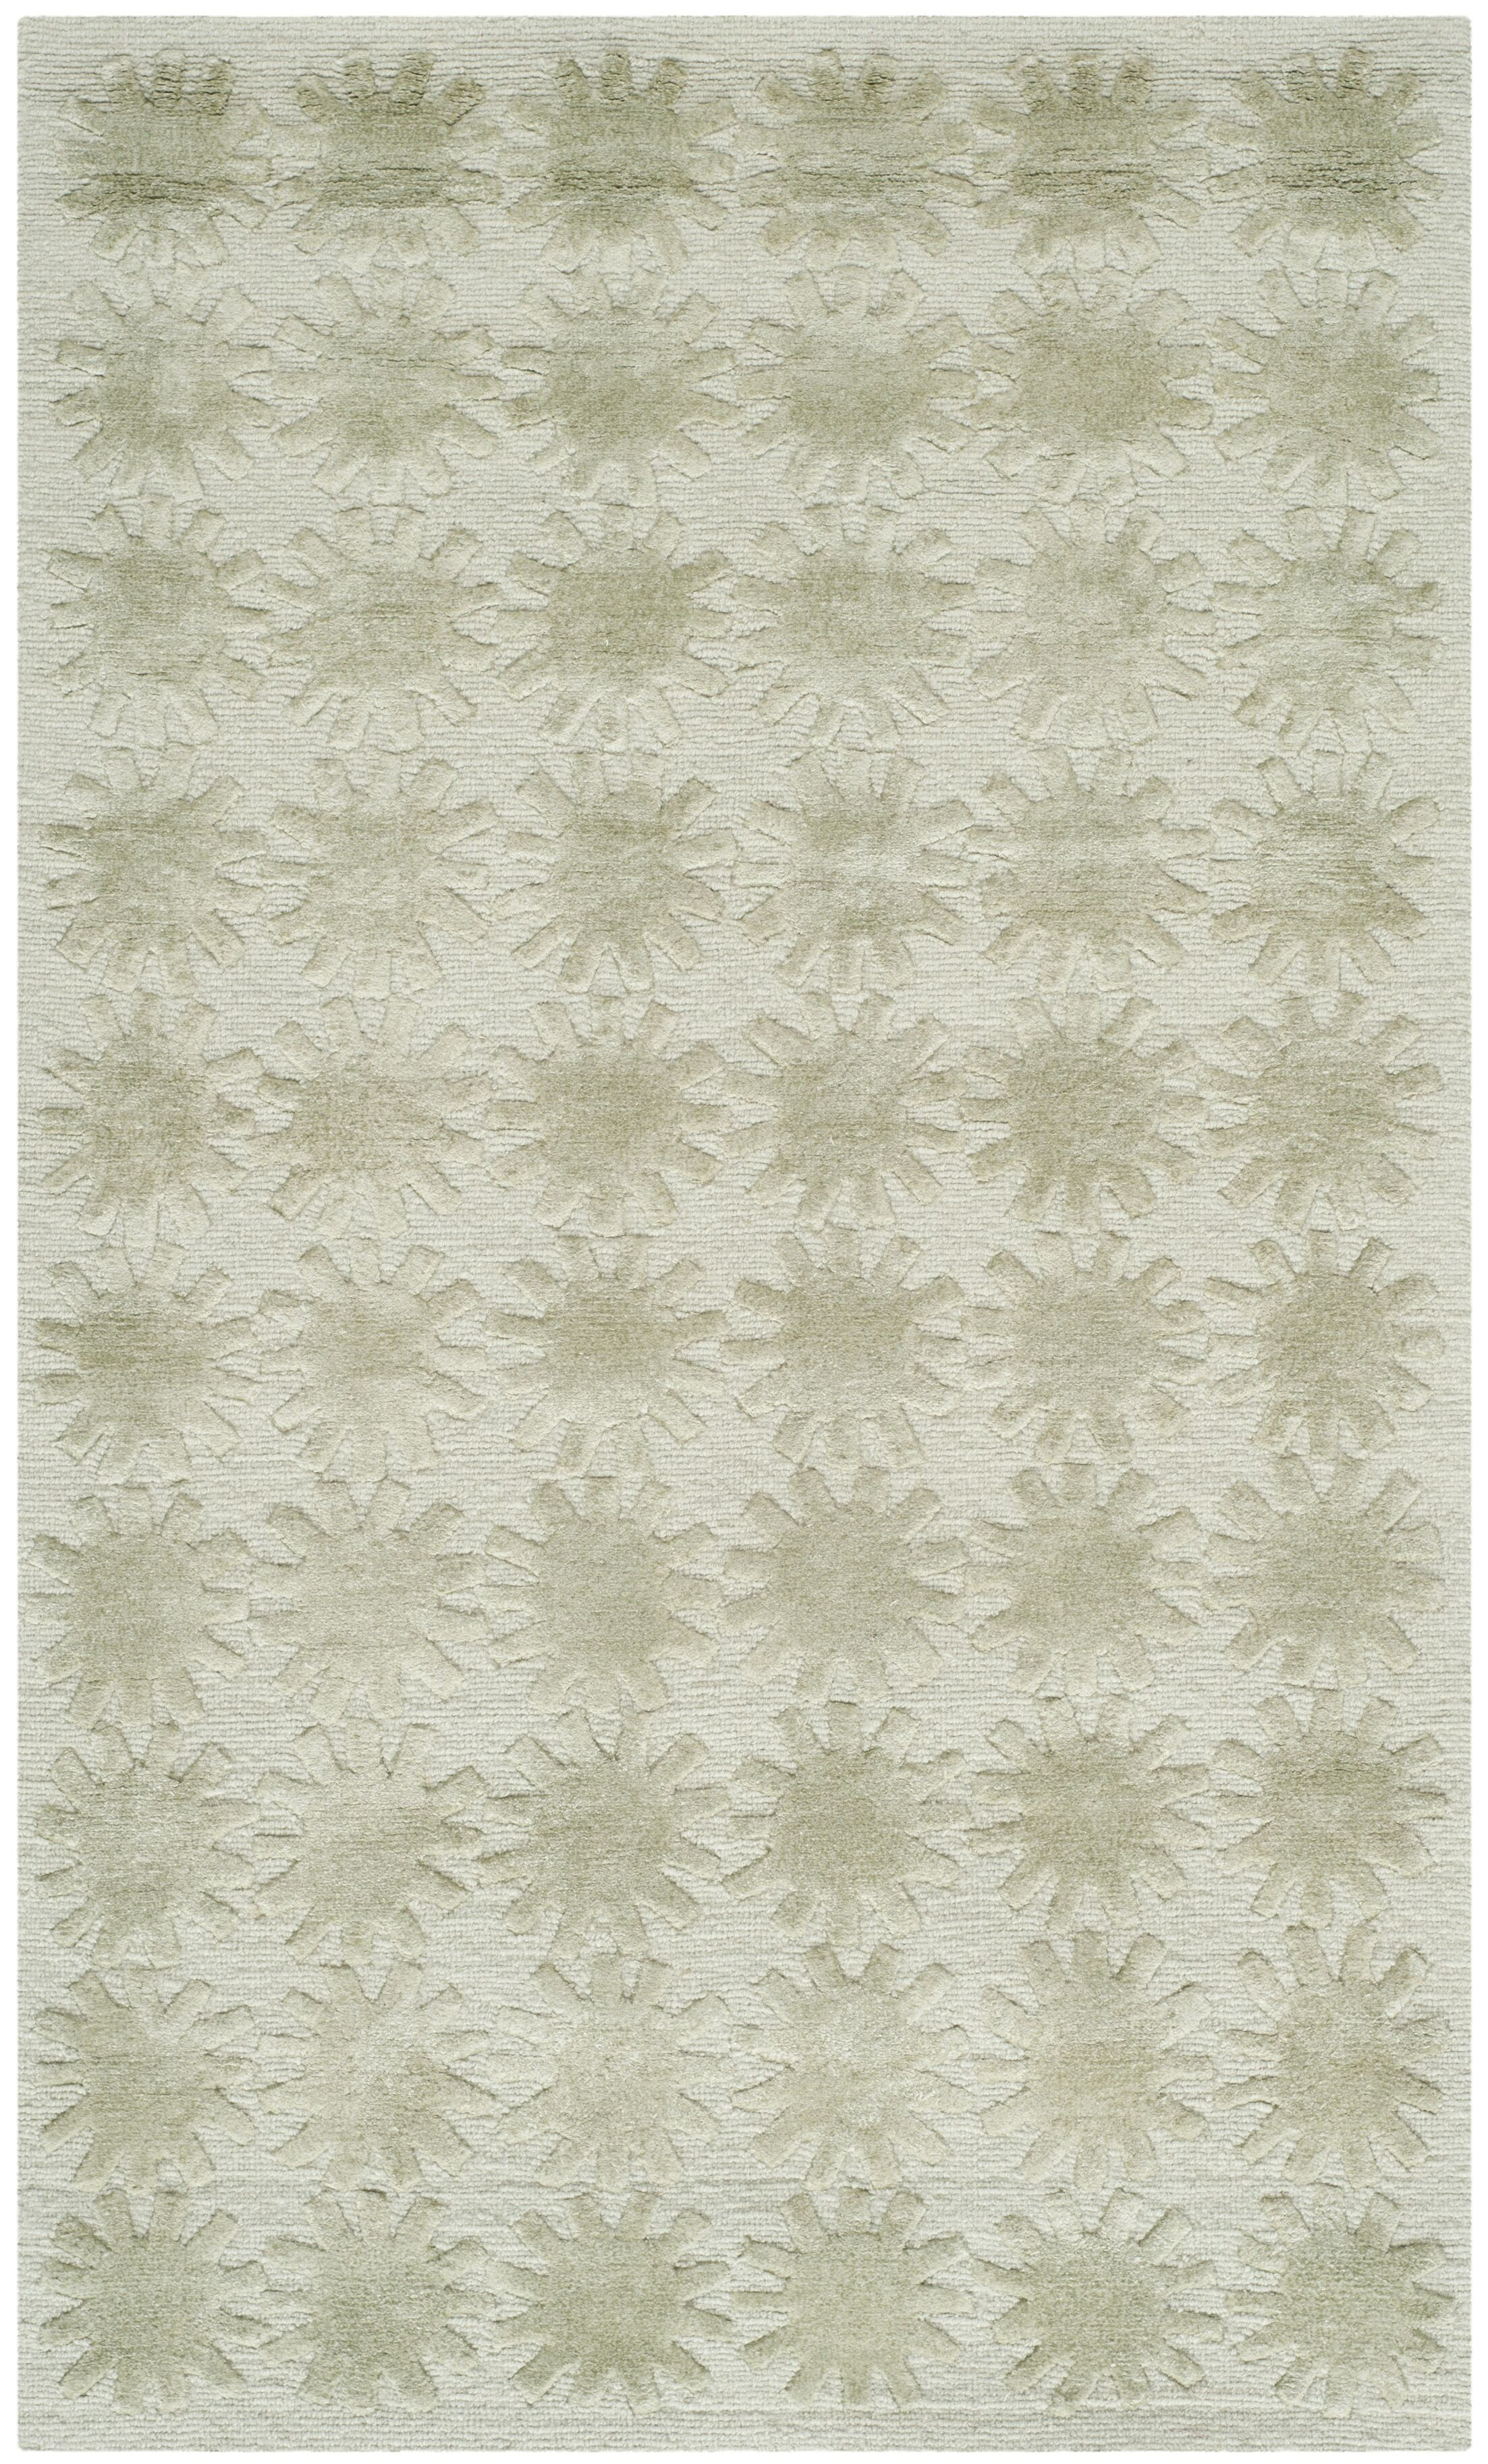 Martha Stewart Constellation Neptune Area Rug Rug Size: Rectangle 2'6